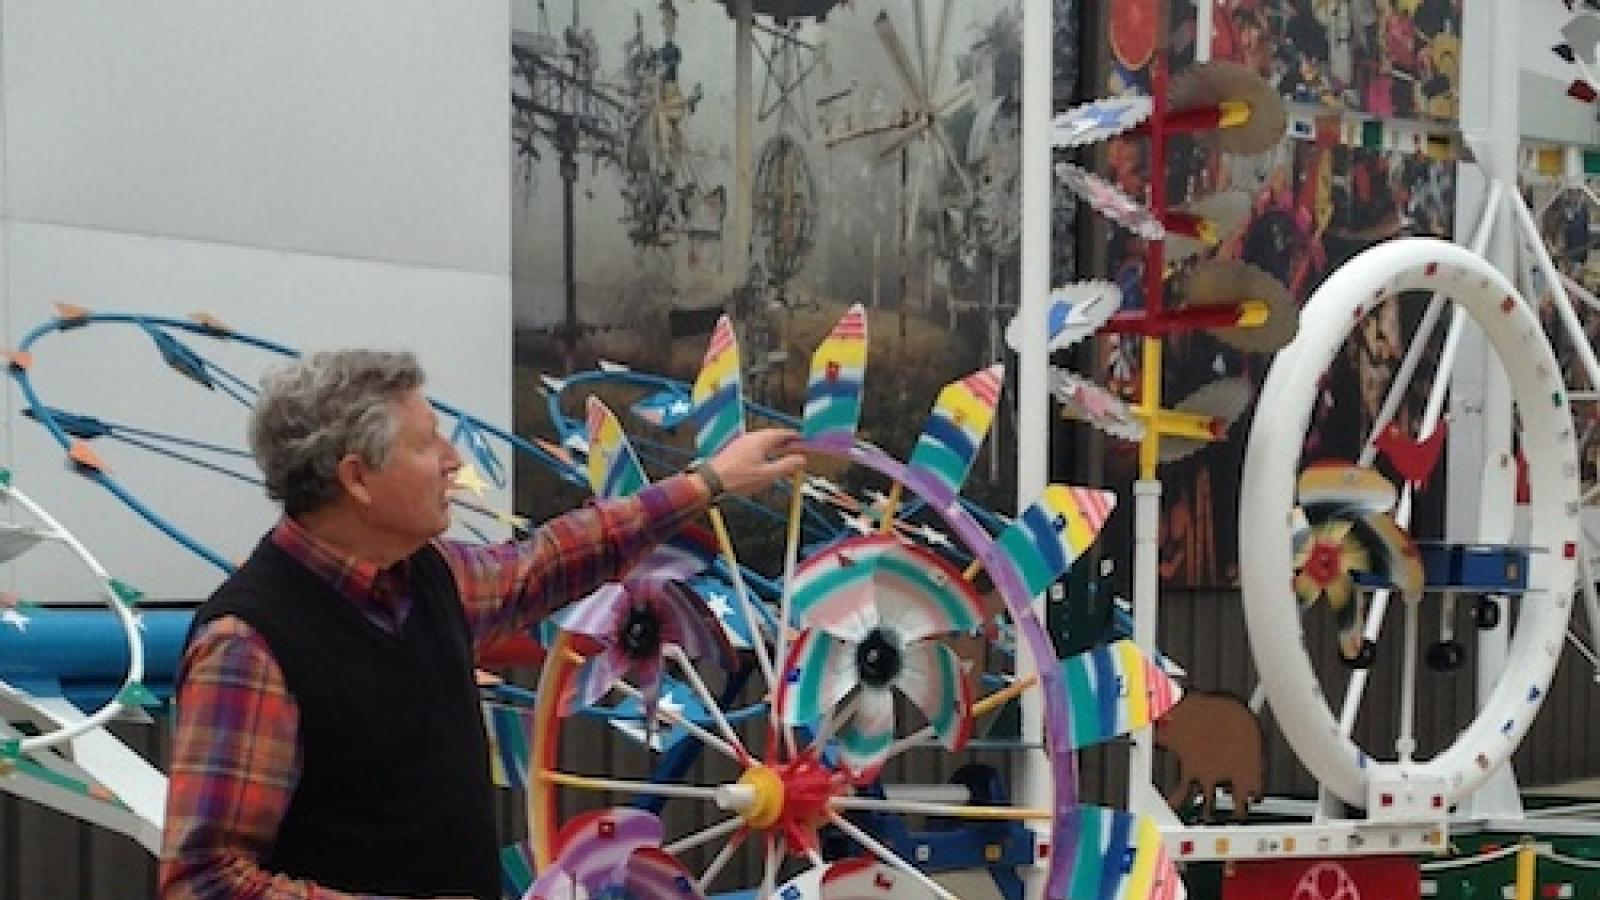 A man shows off a whirligig which is like a looks like a decorated spinning wheel